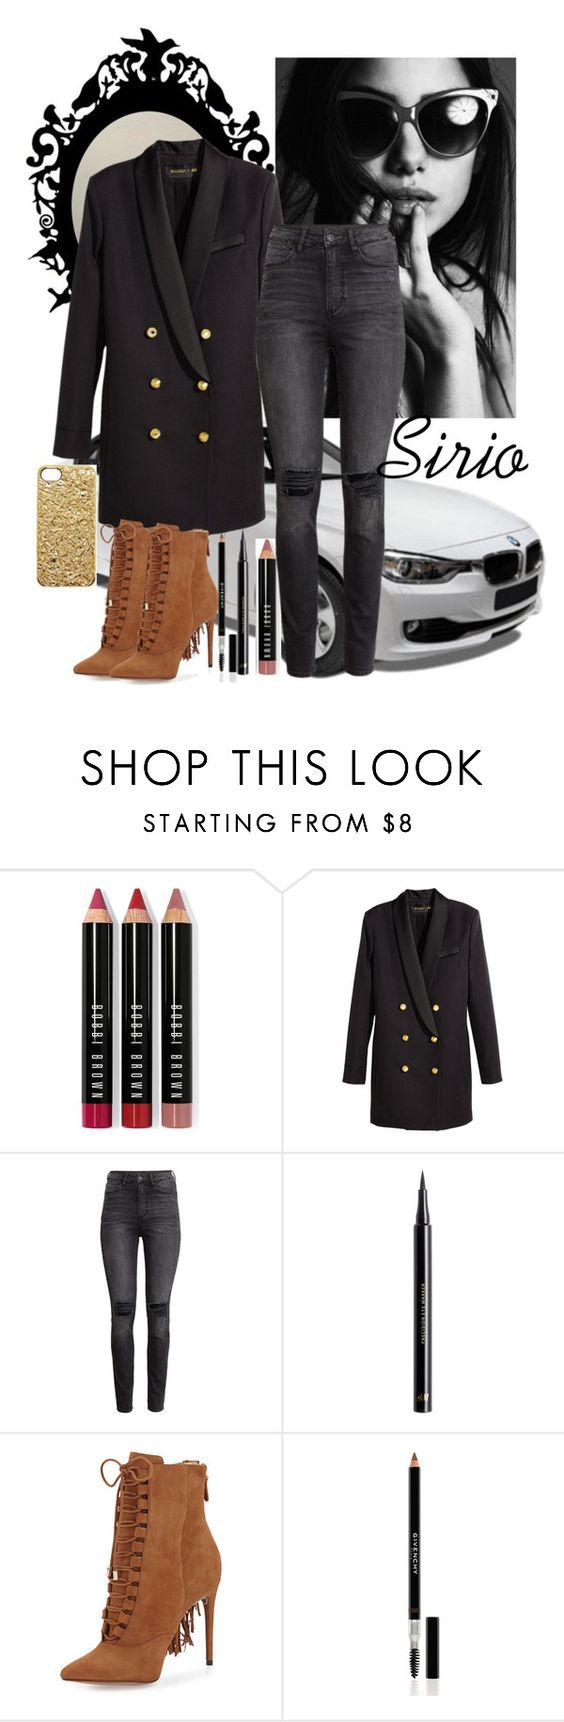 """Sin título #457"" by atmakaur ❤ liked on Polyvore featuring BMW, Bobbi Brown Cosmetics, H&M, Alexandre Birman, Givenchy and Marc by Marc Jacobs"